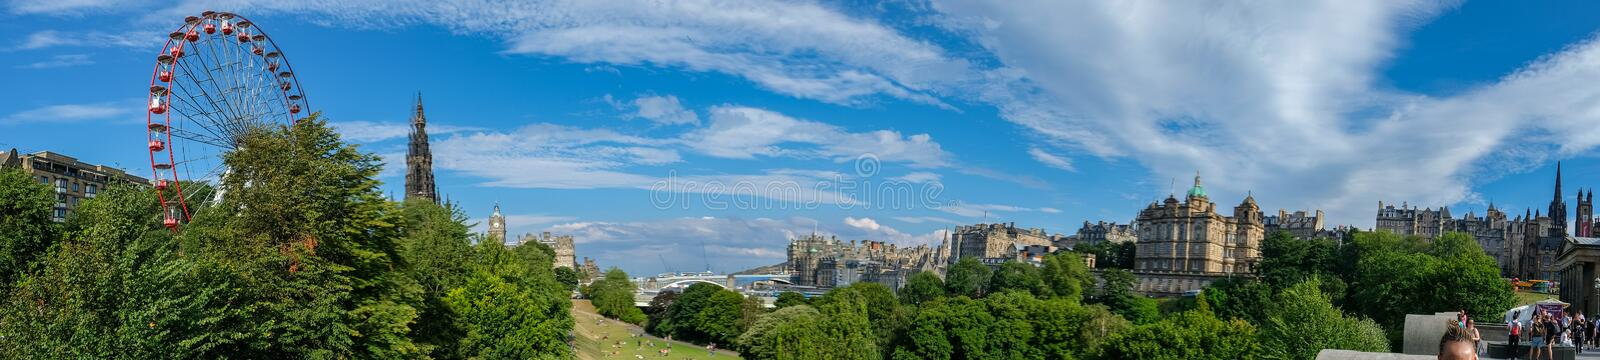 Edinburgh, Scotland Skyline panorama viewed from the Playfair Steps on a beautiful summer afternoon stock photography